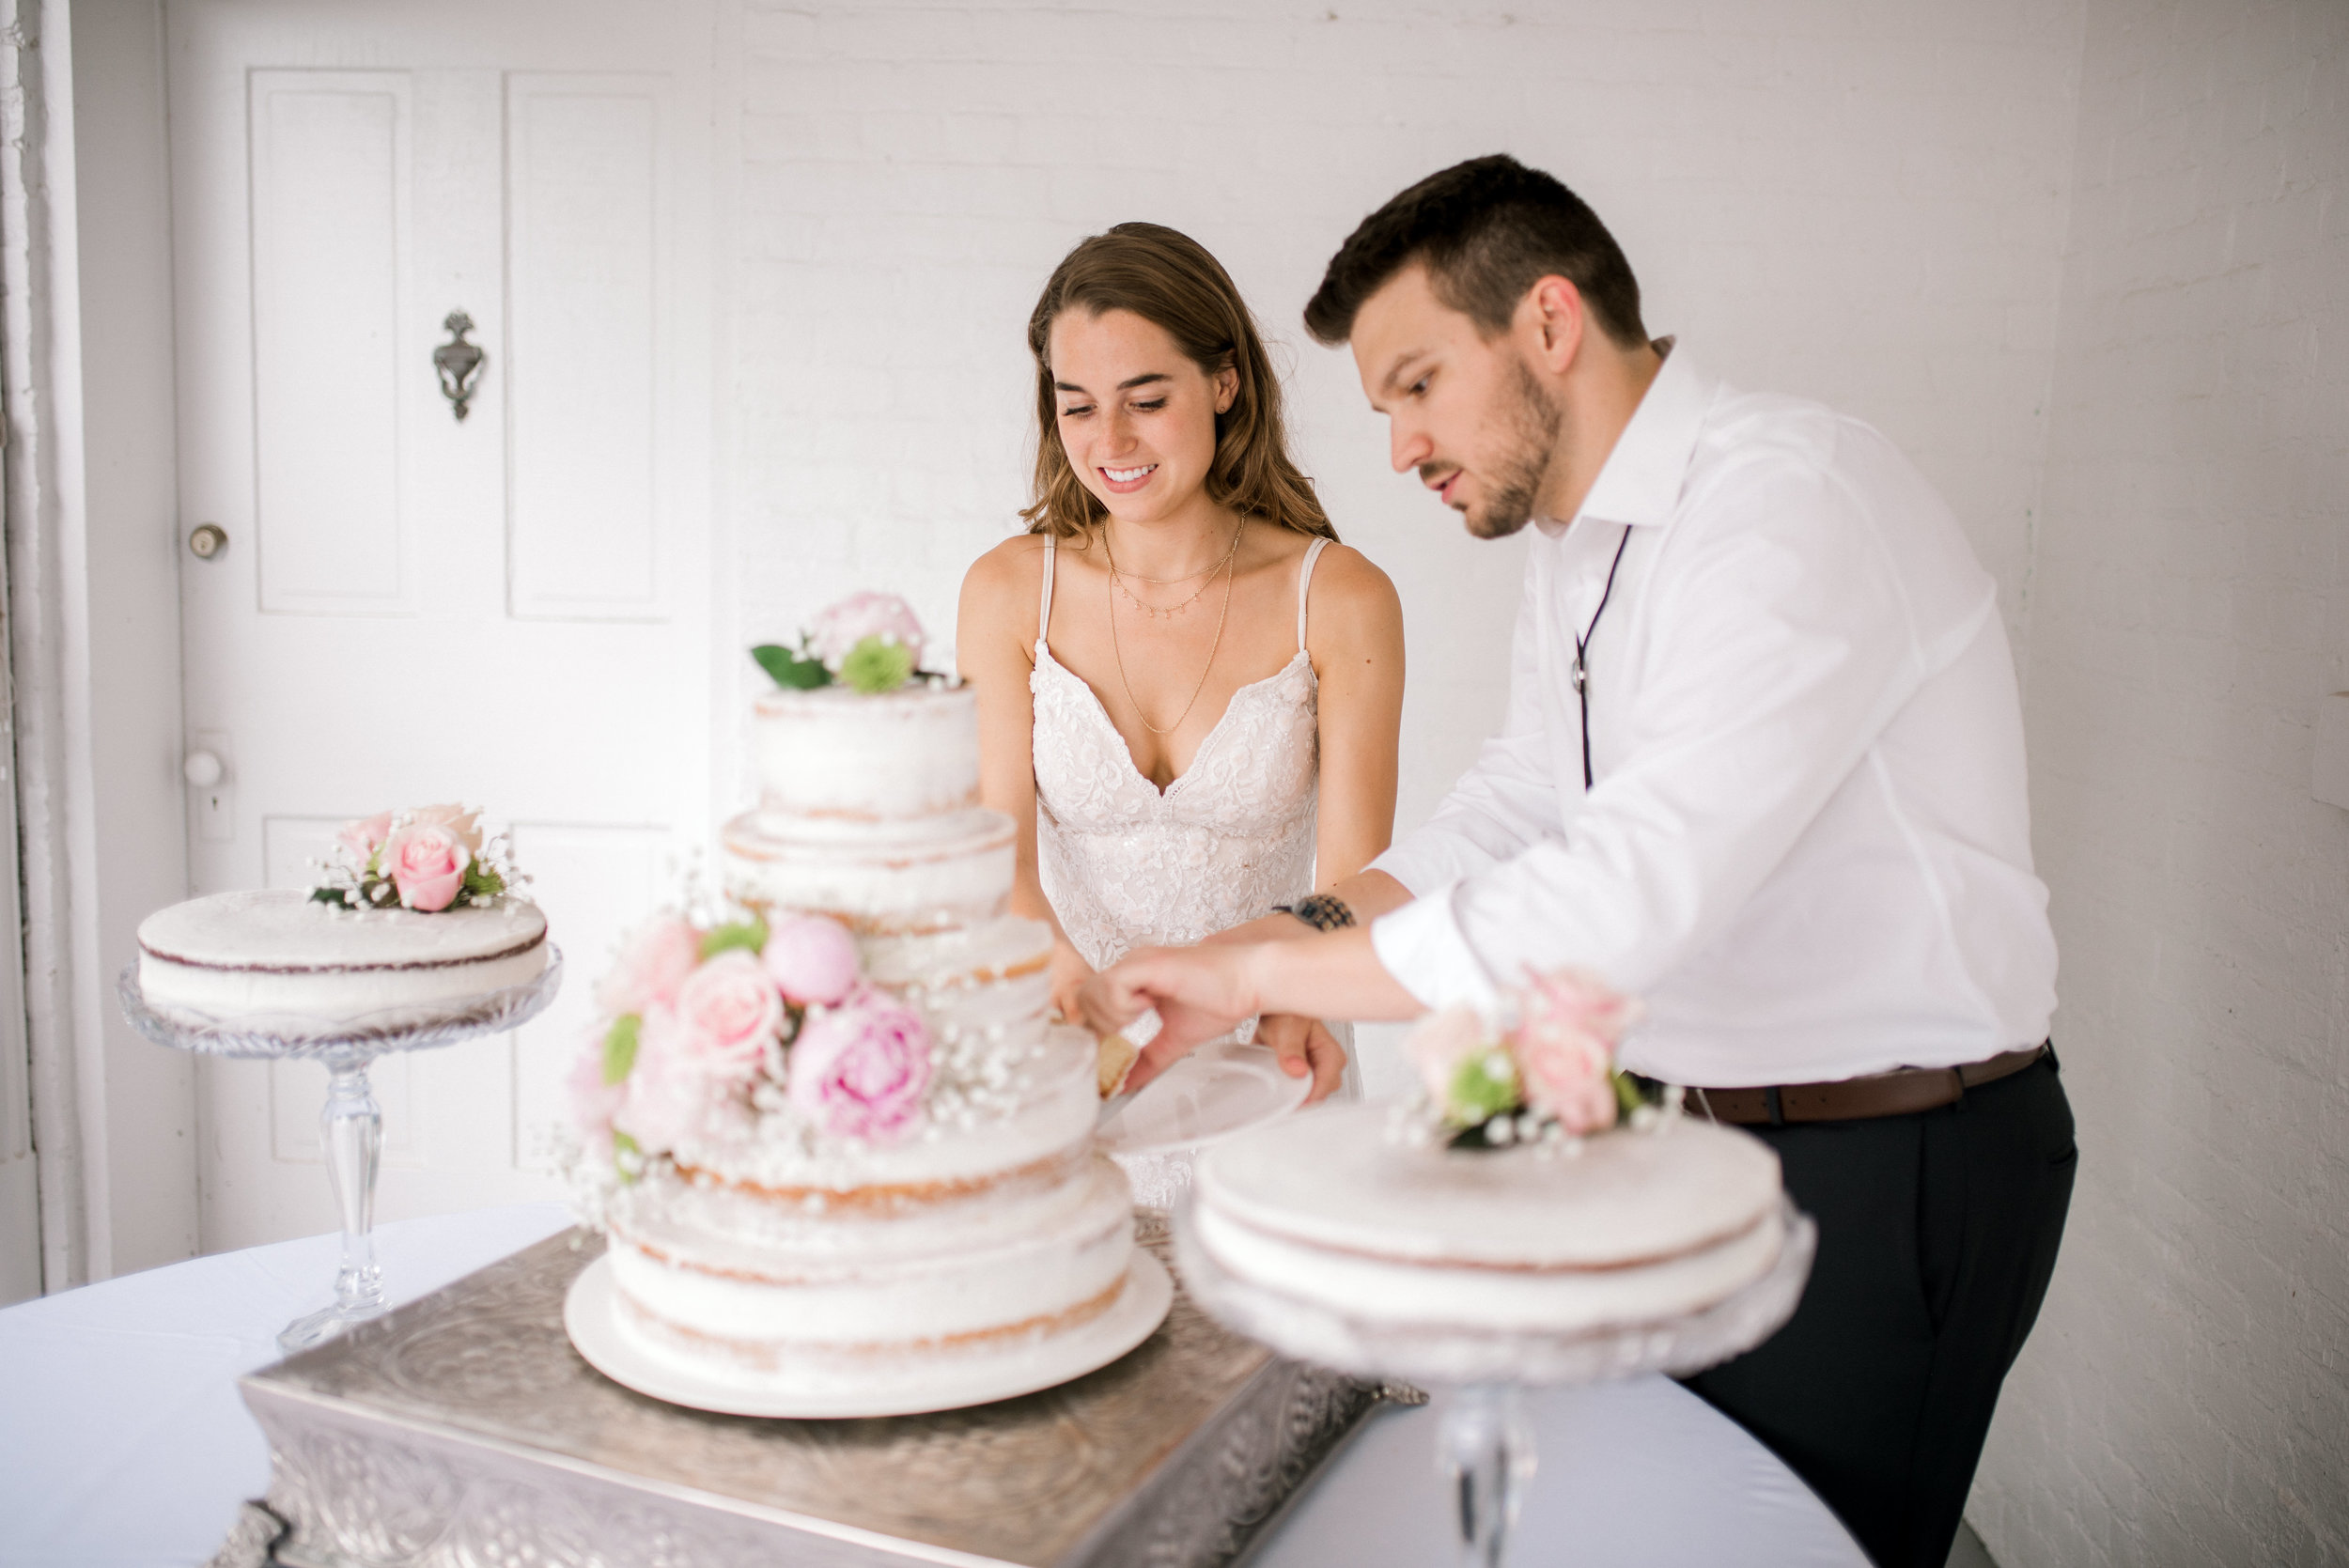 lexington-kentucky-wedding-photographer-cake-cutting